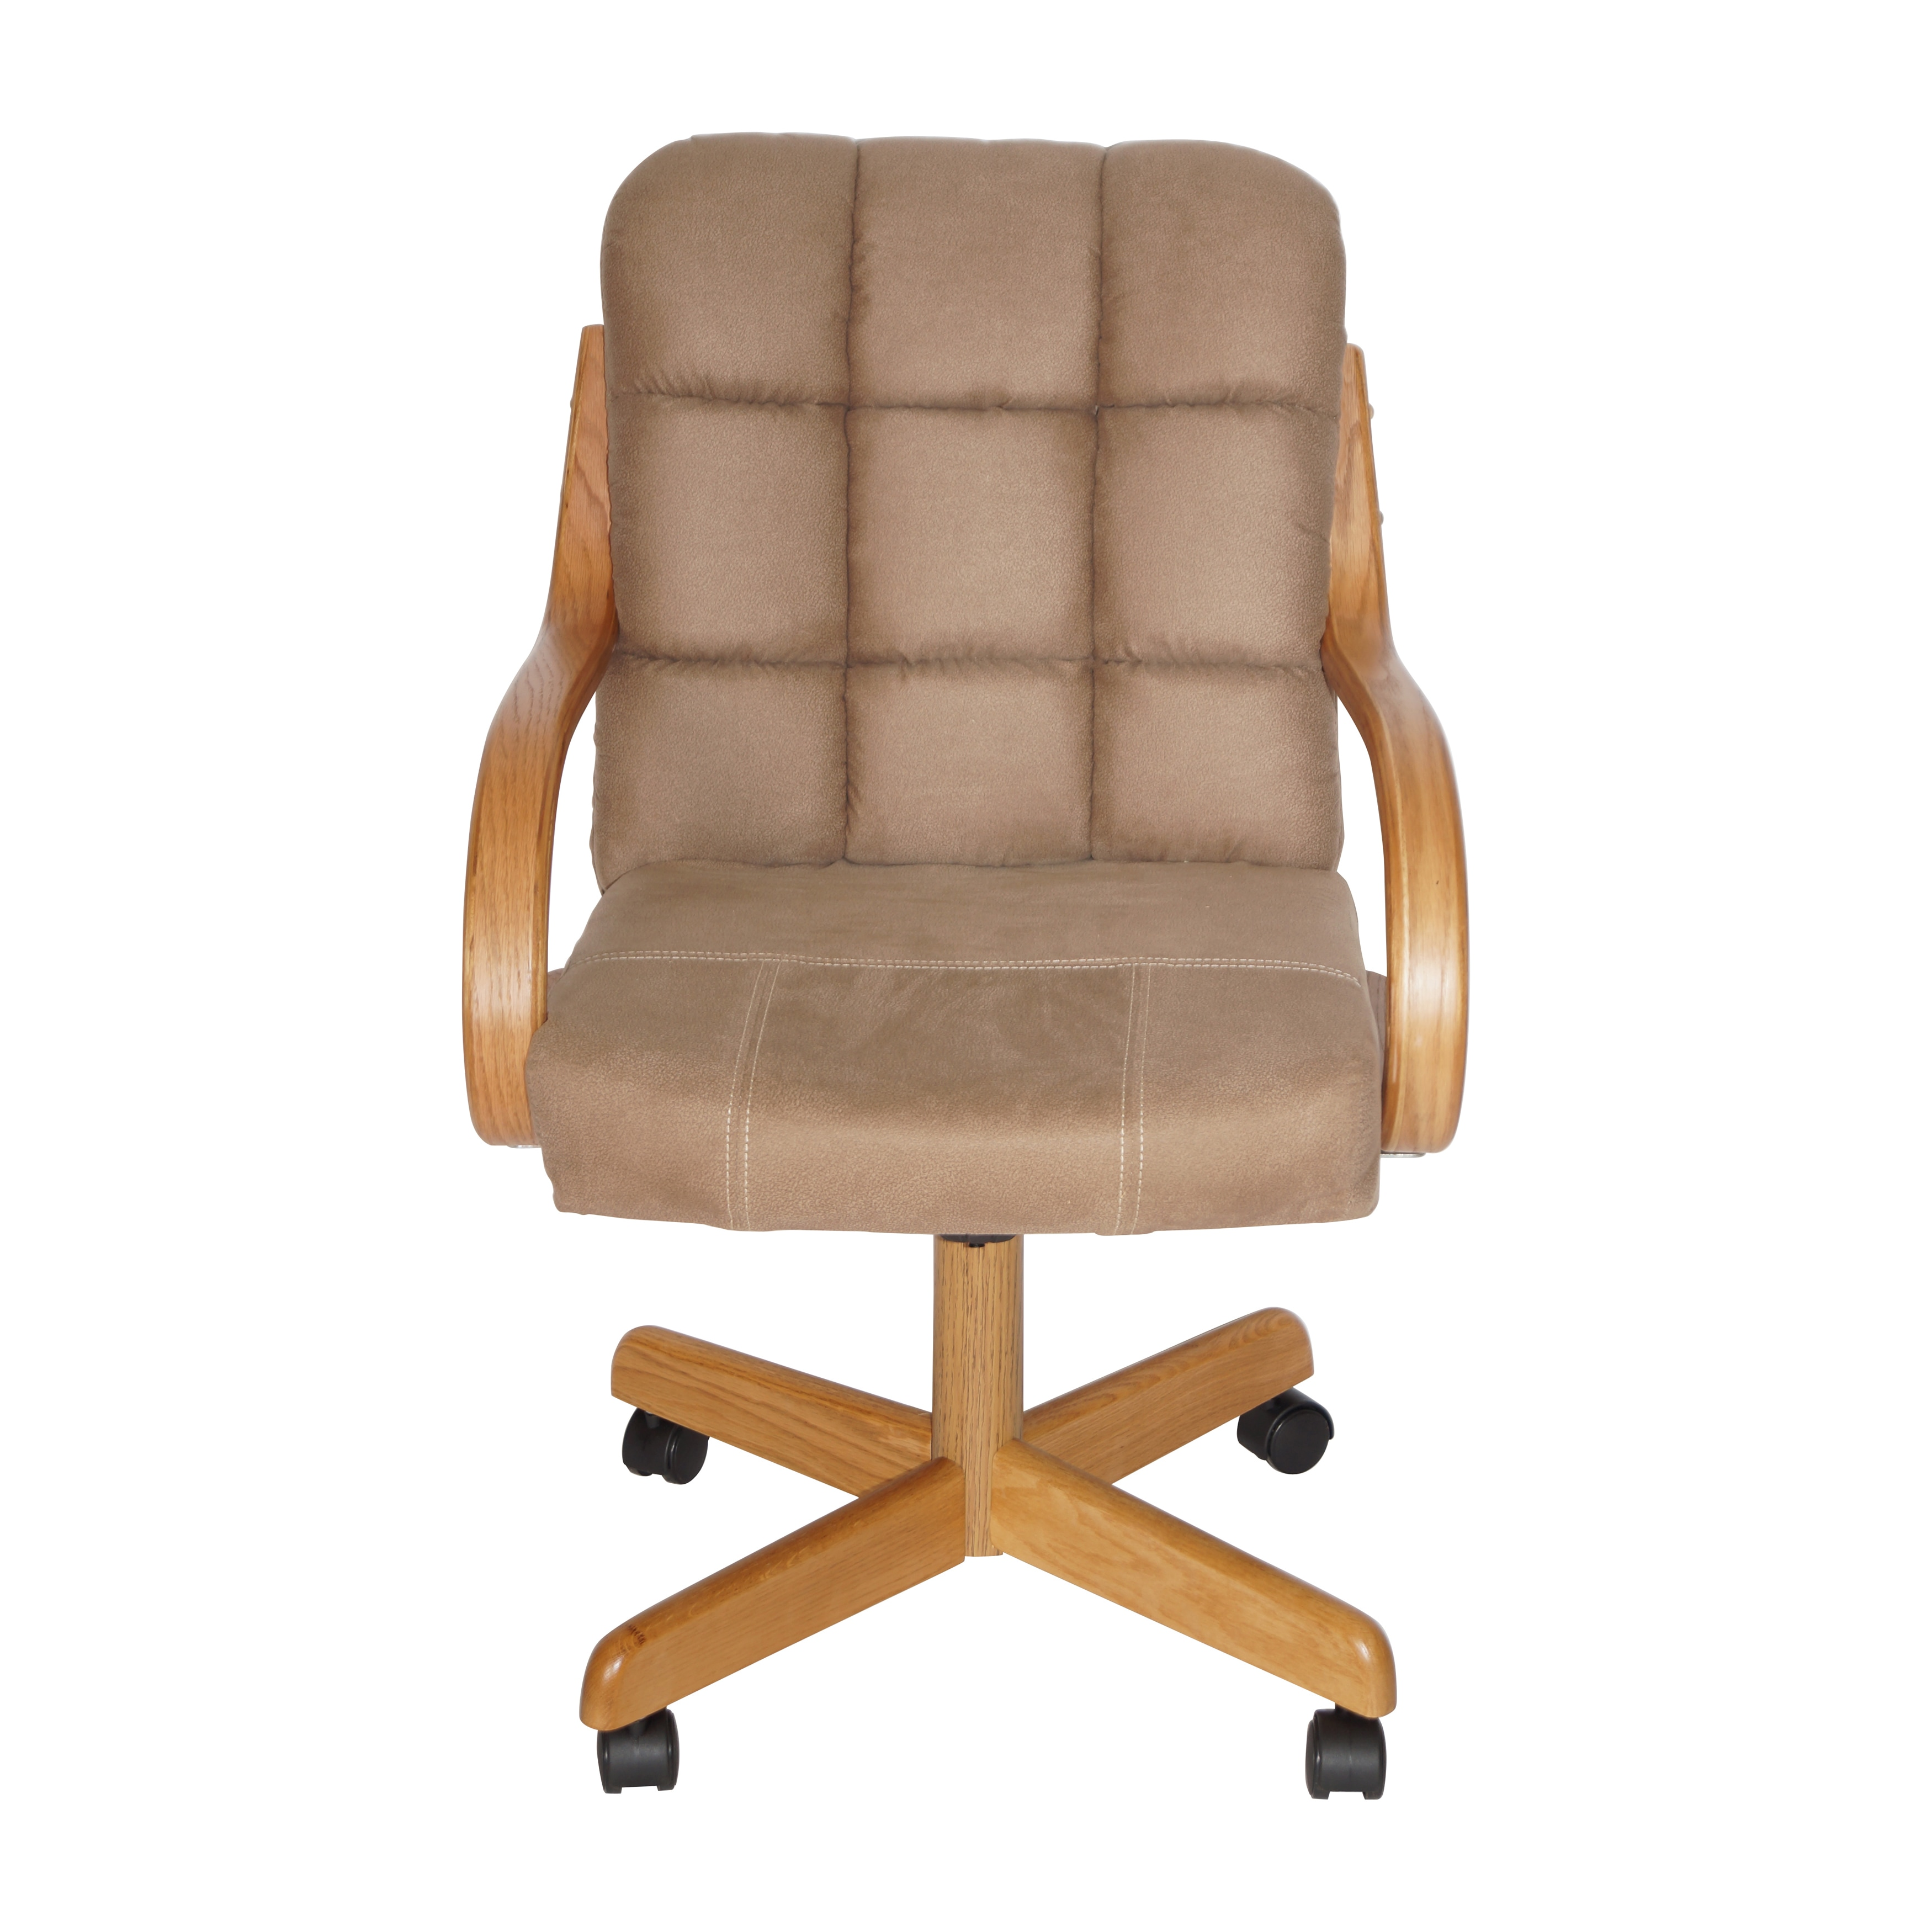 Surprising Brown Upholstered Casual Rolling Dining Chair 37Hx24Wx26D Short Links Chair Design For Home Short Linksinfo